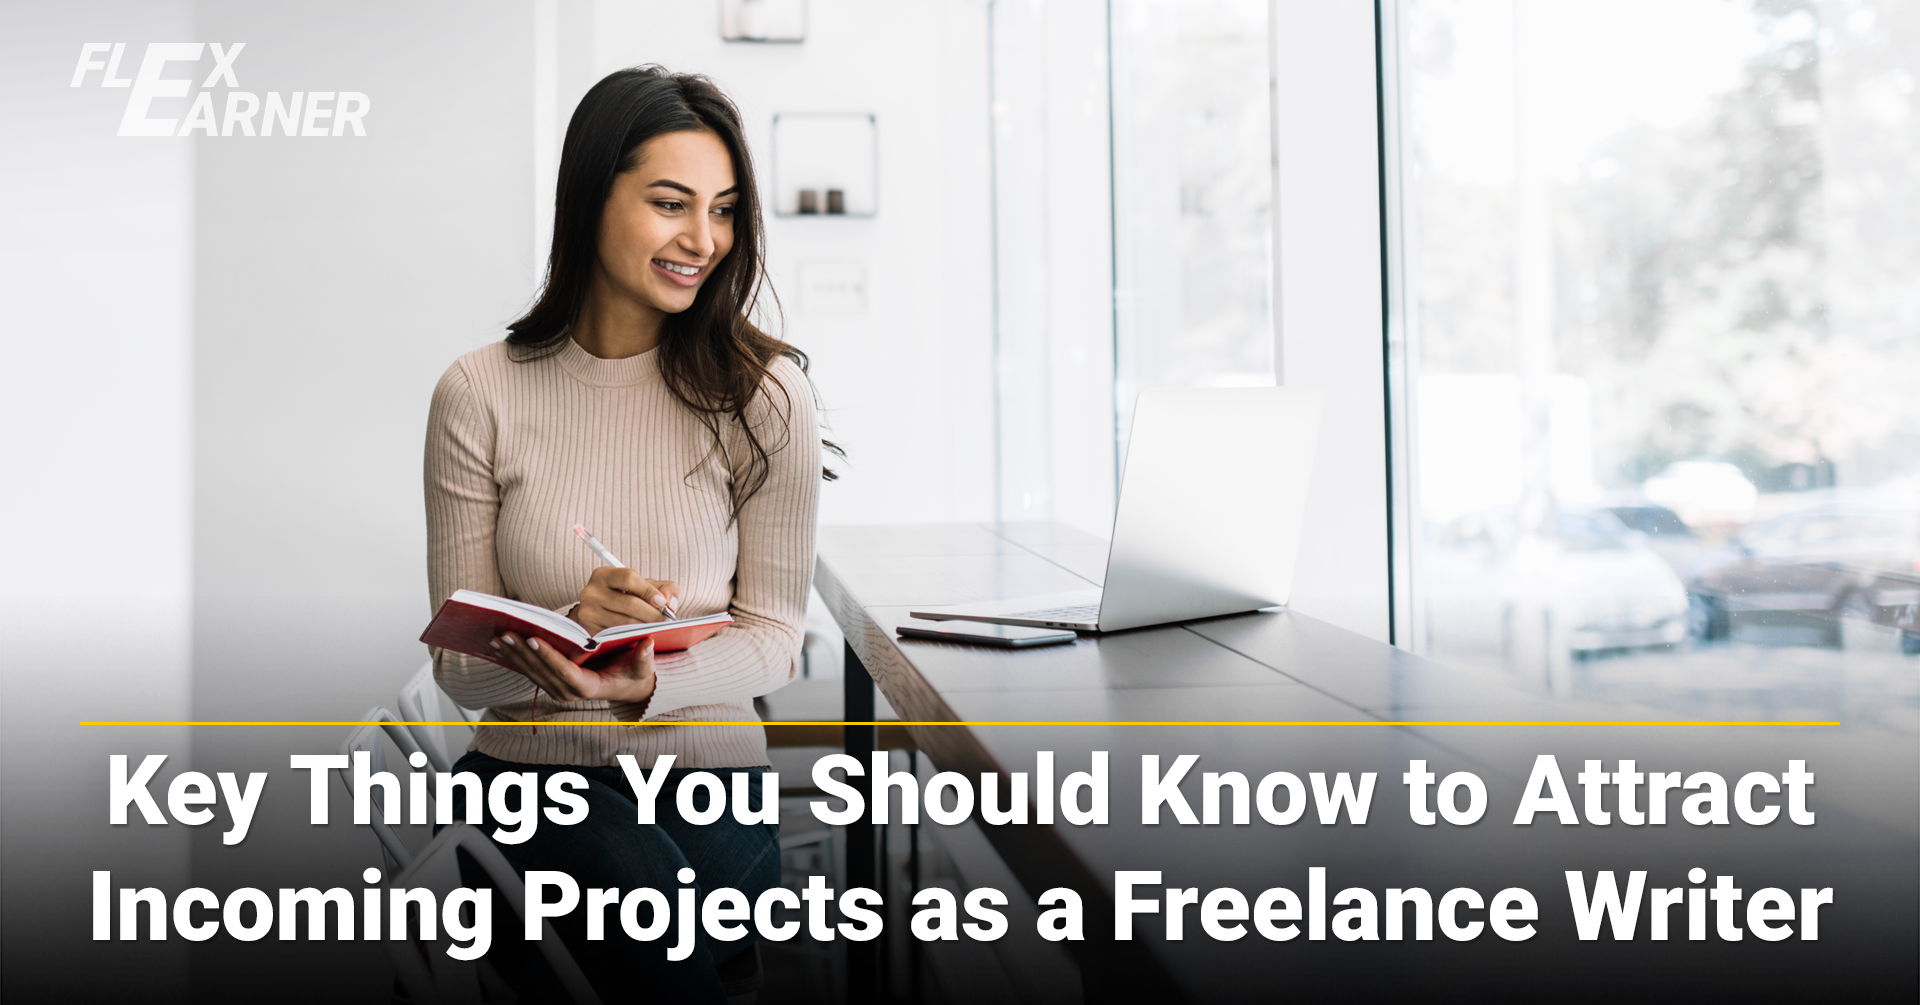 Key Things You Should Know to Attract Incoming Projects as a Freelance Writer